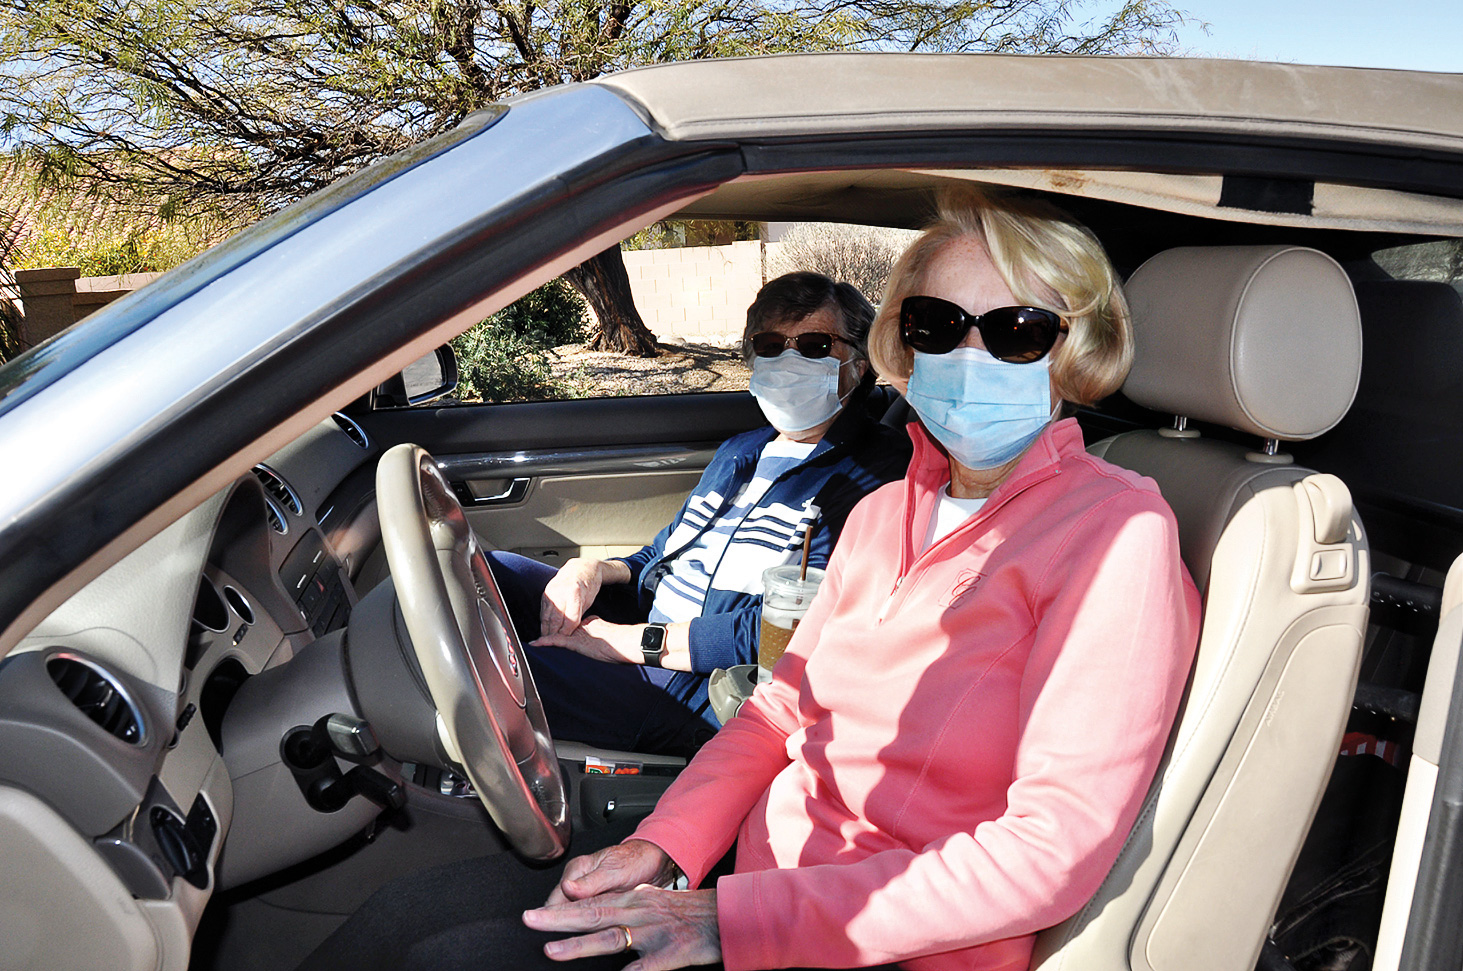 Village member Barbara Smith heads to town with volunteer driver Linda Russell.